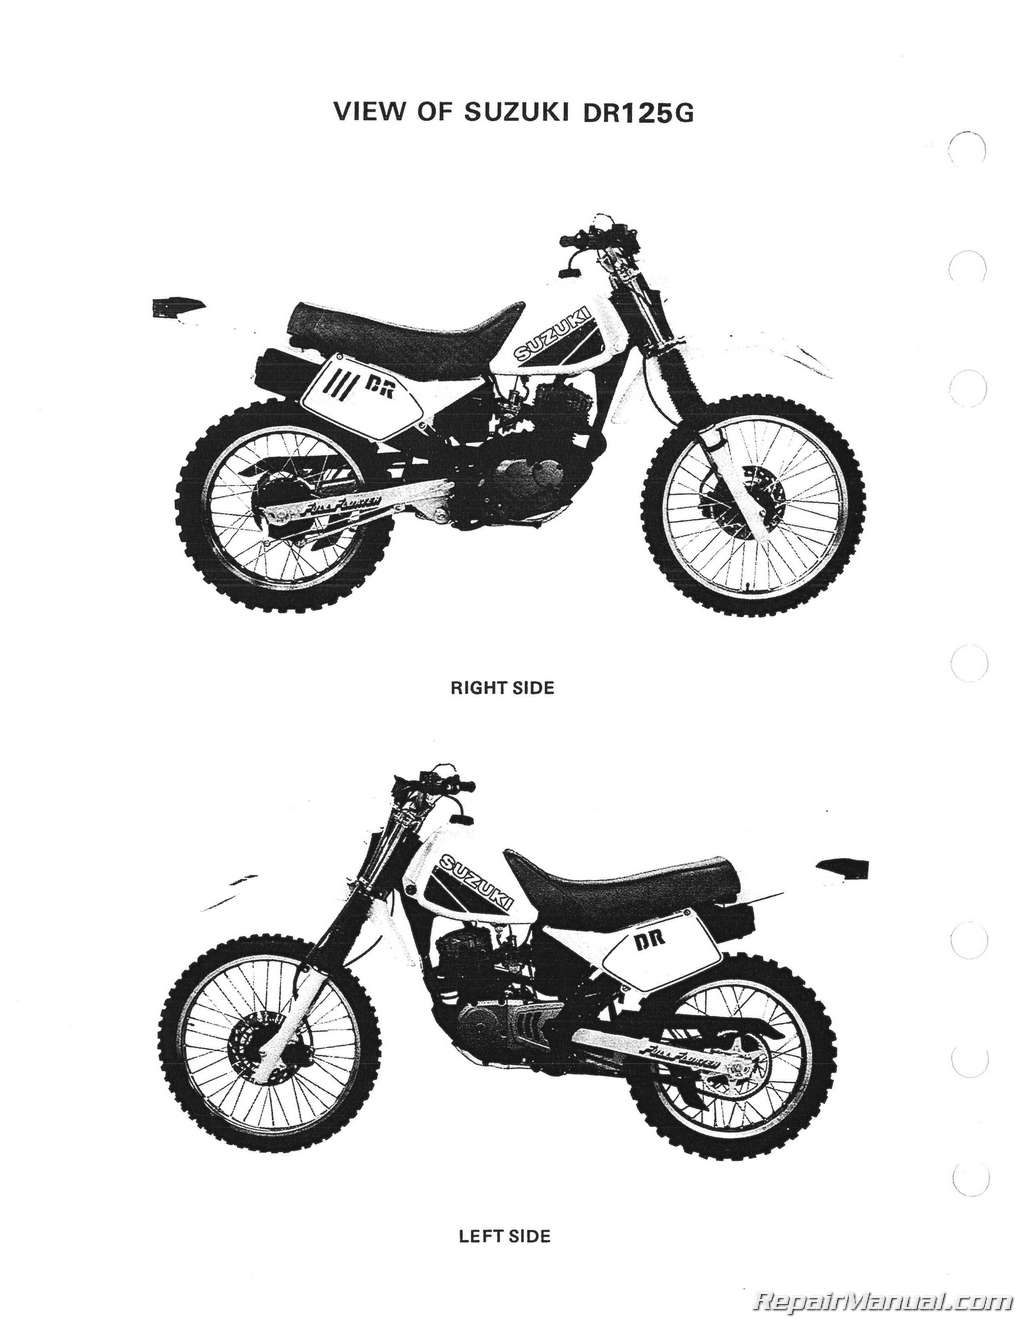 1986 1987 1988 suzuki dr125 sp125 motorcycle service manual 1986 1988 suzuki dr125 sp125 service manual